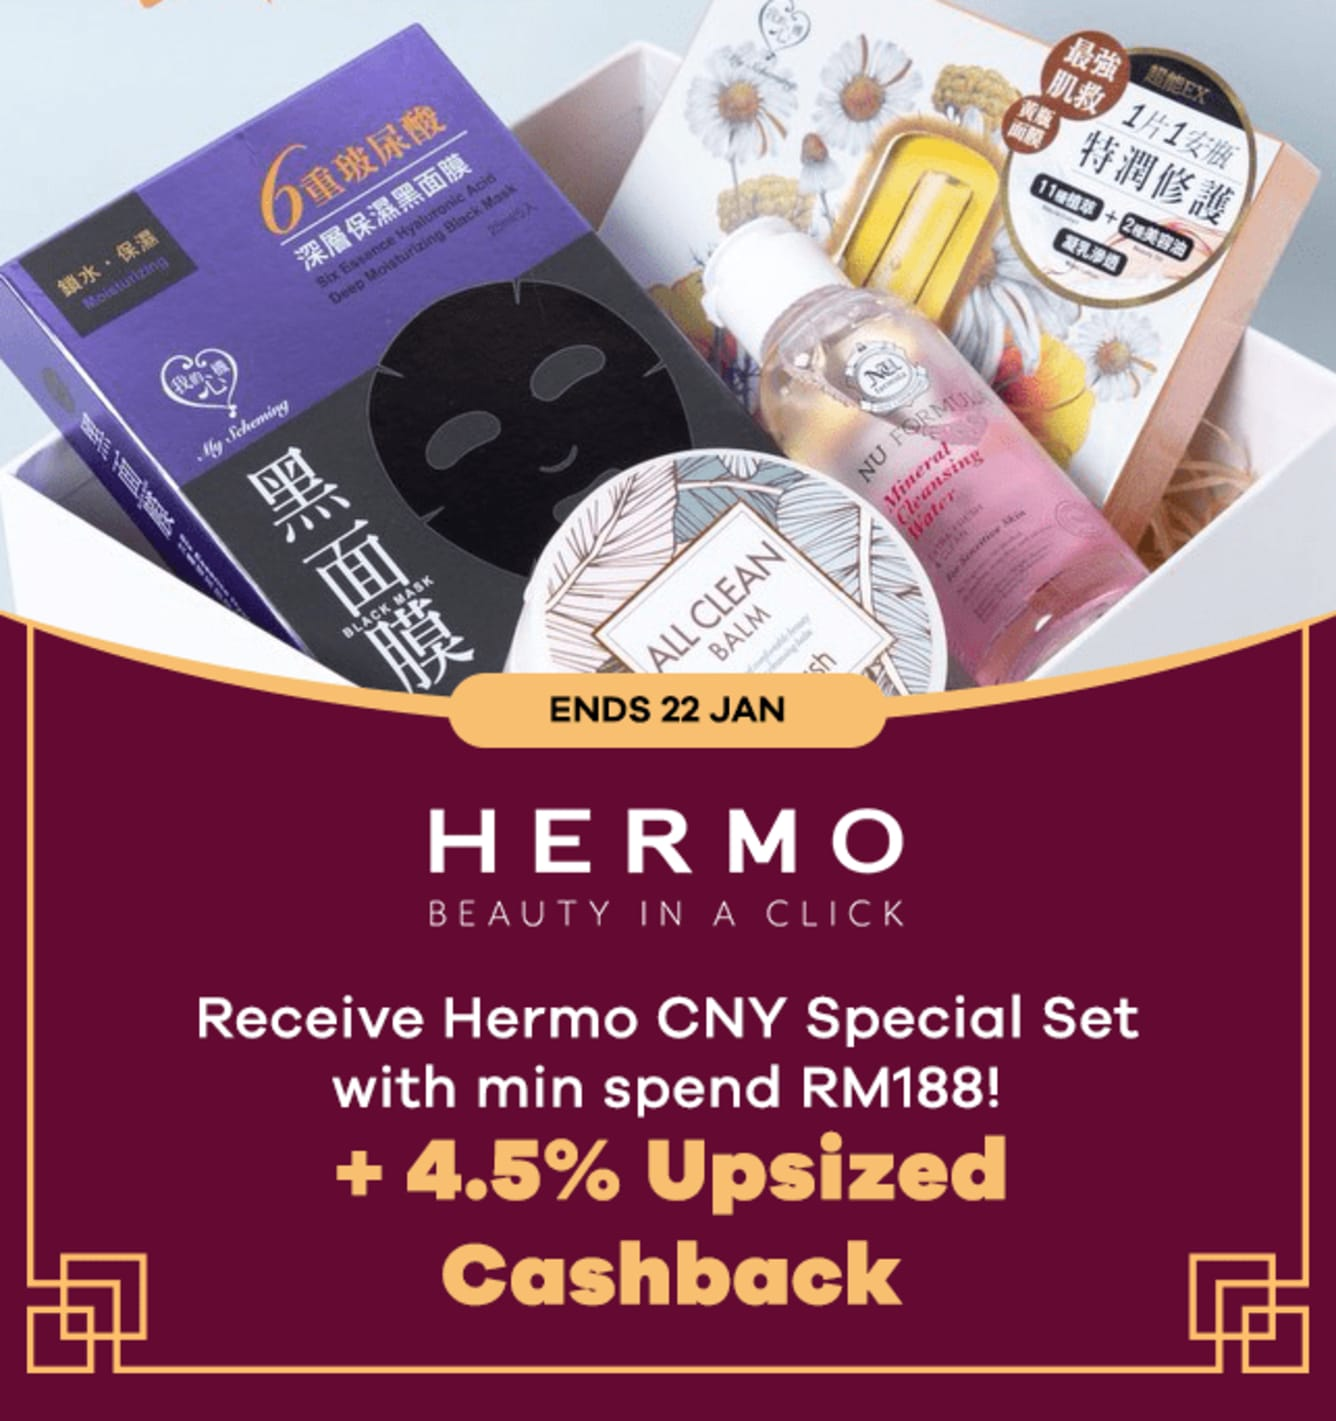 Hermo 4.5% Upsized Cashback